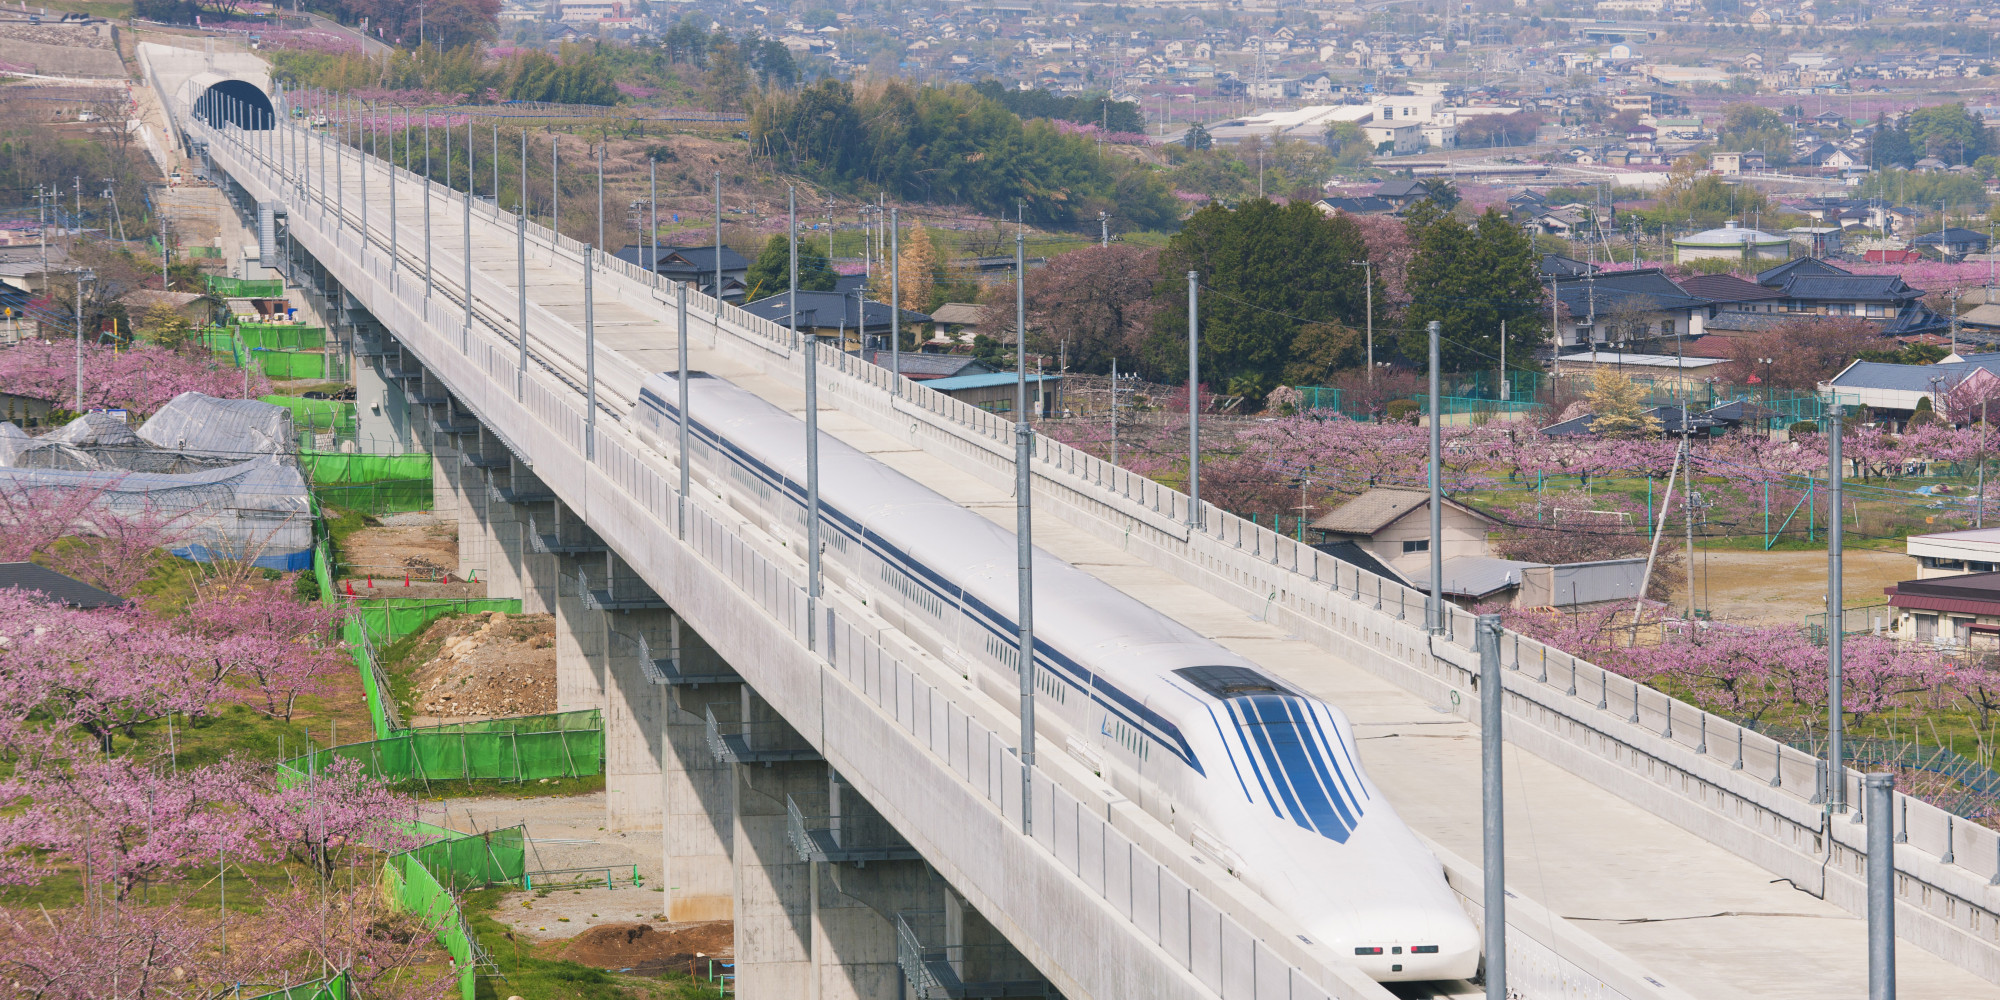 How Is The Maglev Train Able To Travel So Fast